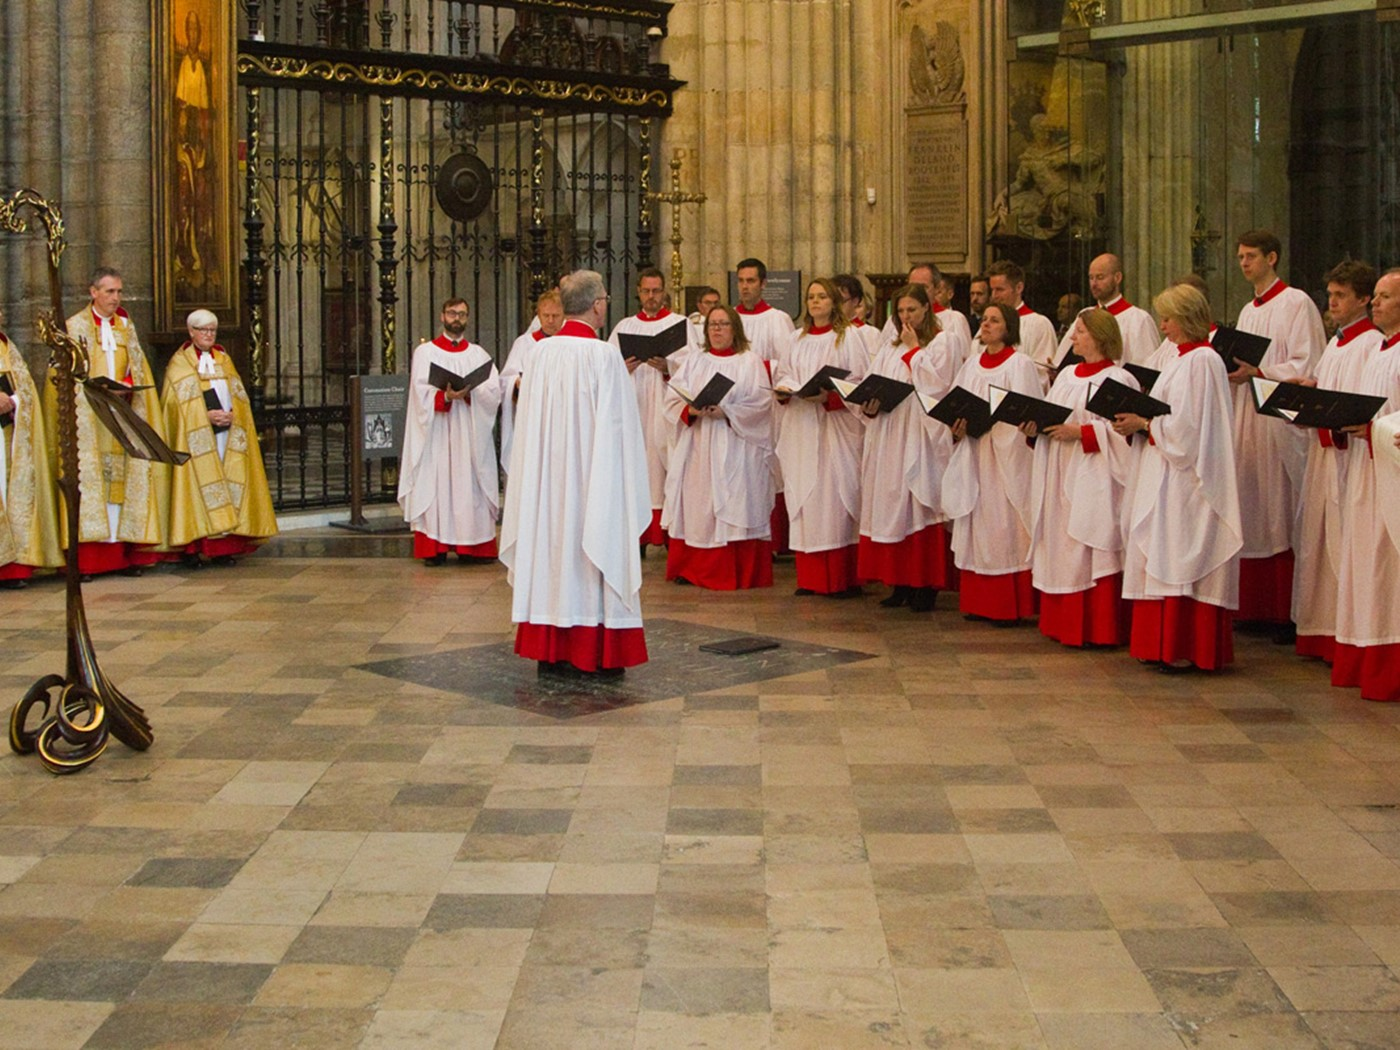 The Westminster Abbey Special Service Choir sing an anthem commissioned for the service by The Arts Society